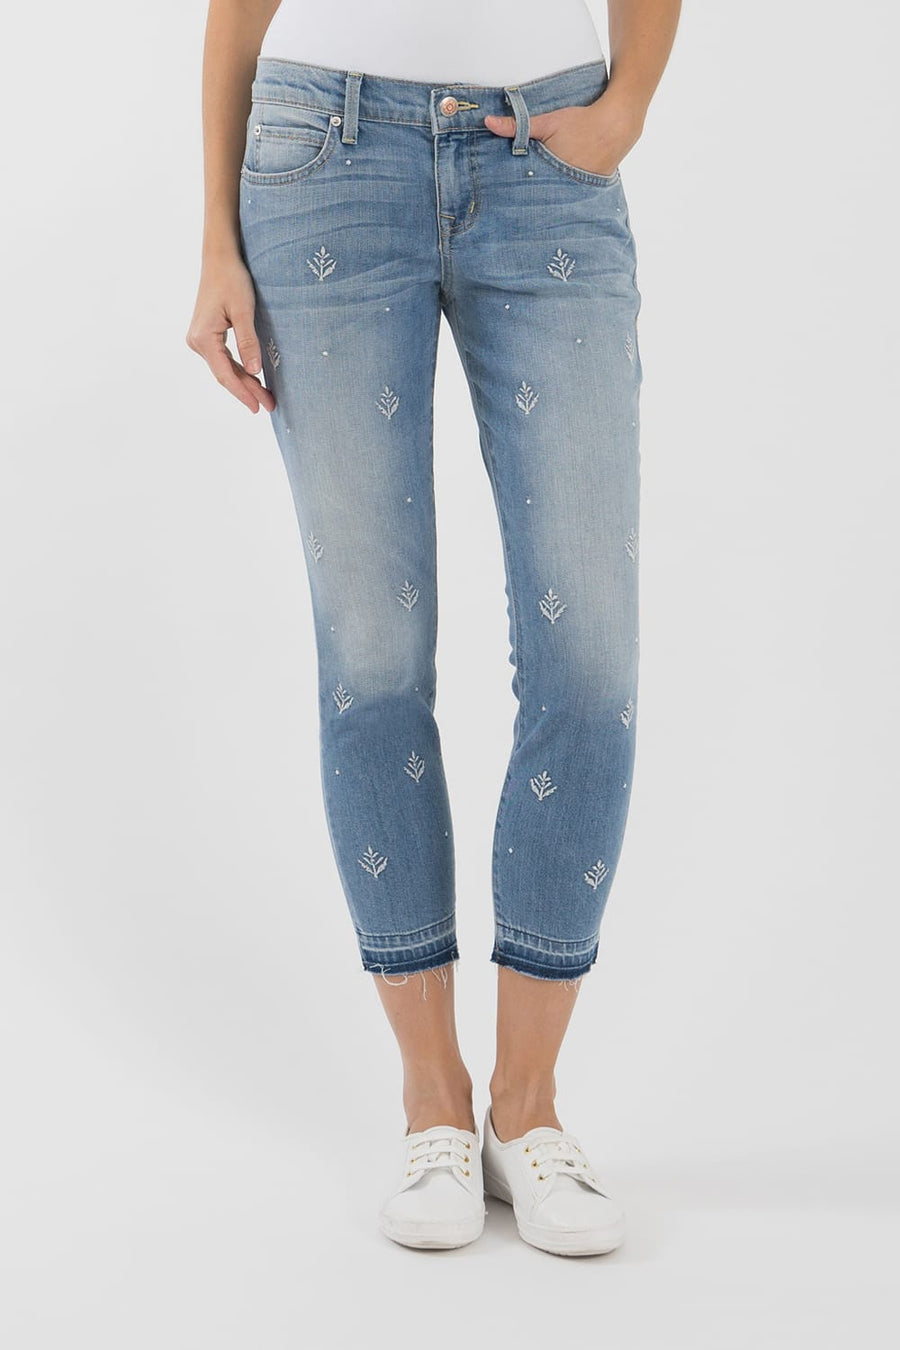 Aubrey Relaxed Skinny - level99jeans